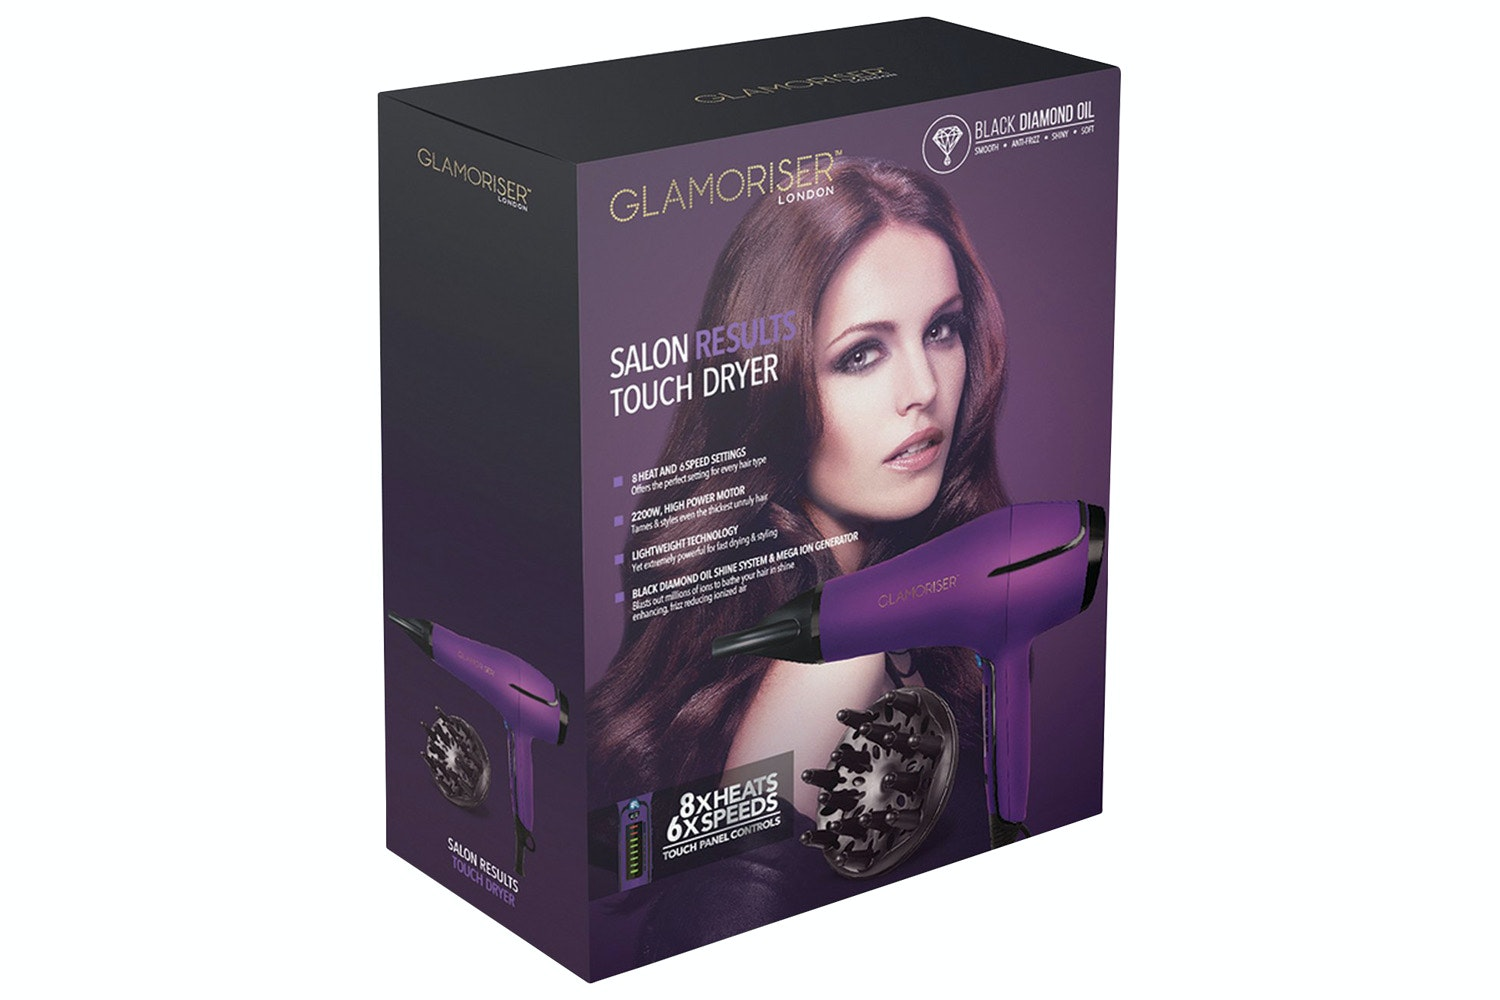 Glamoriser 2200W Salon Results Dryer | GLA032